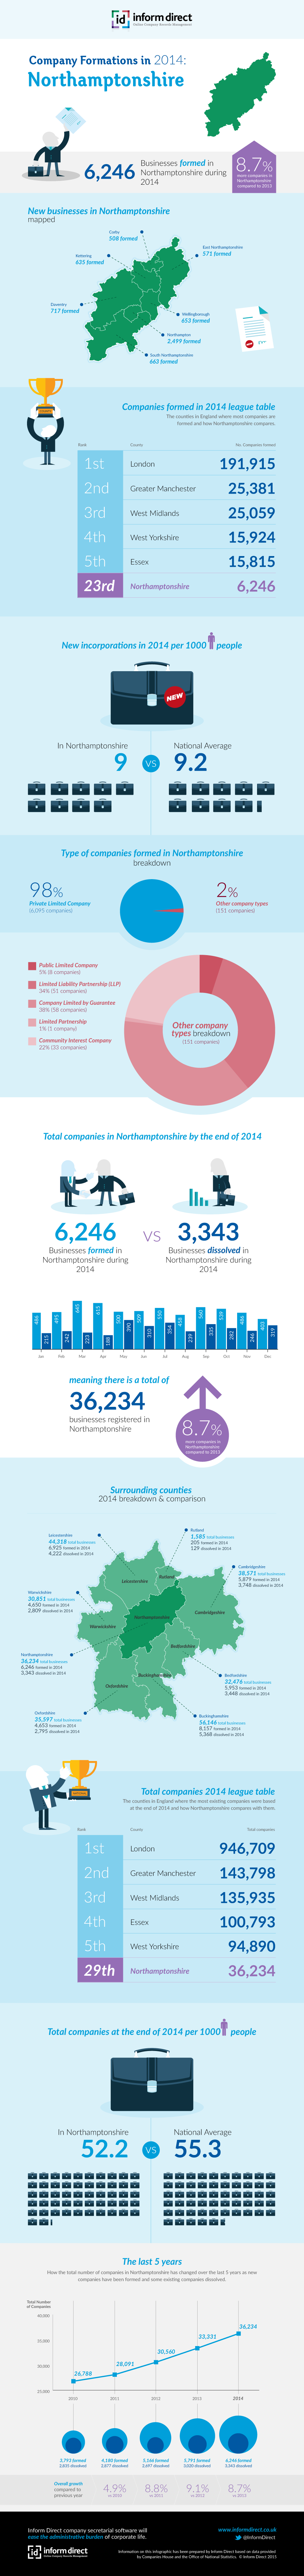 Inform Direct - Company Formations in Northamptonshire 2014 Infographic